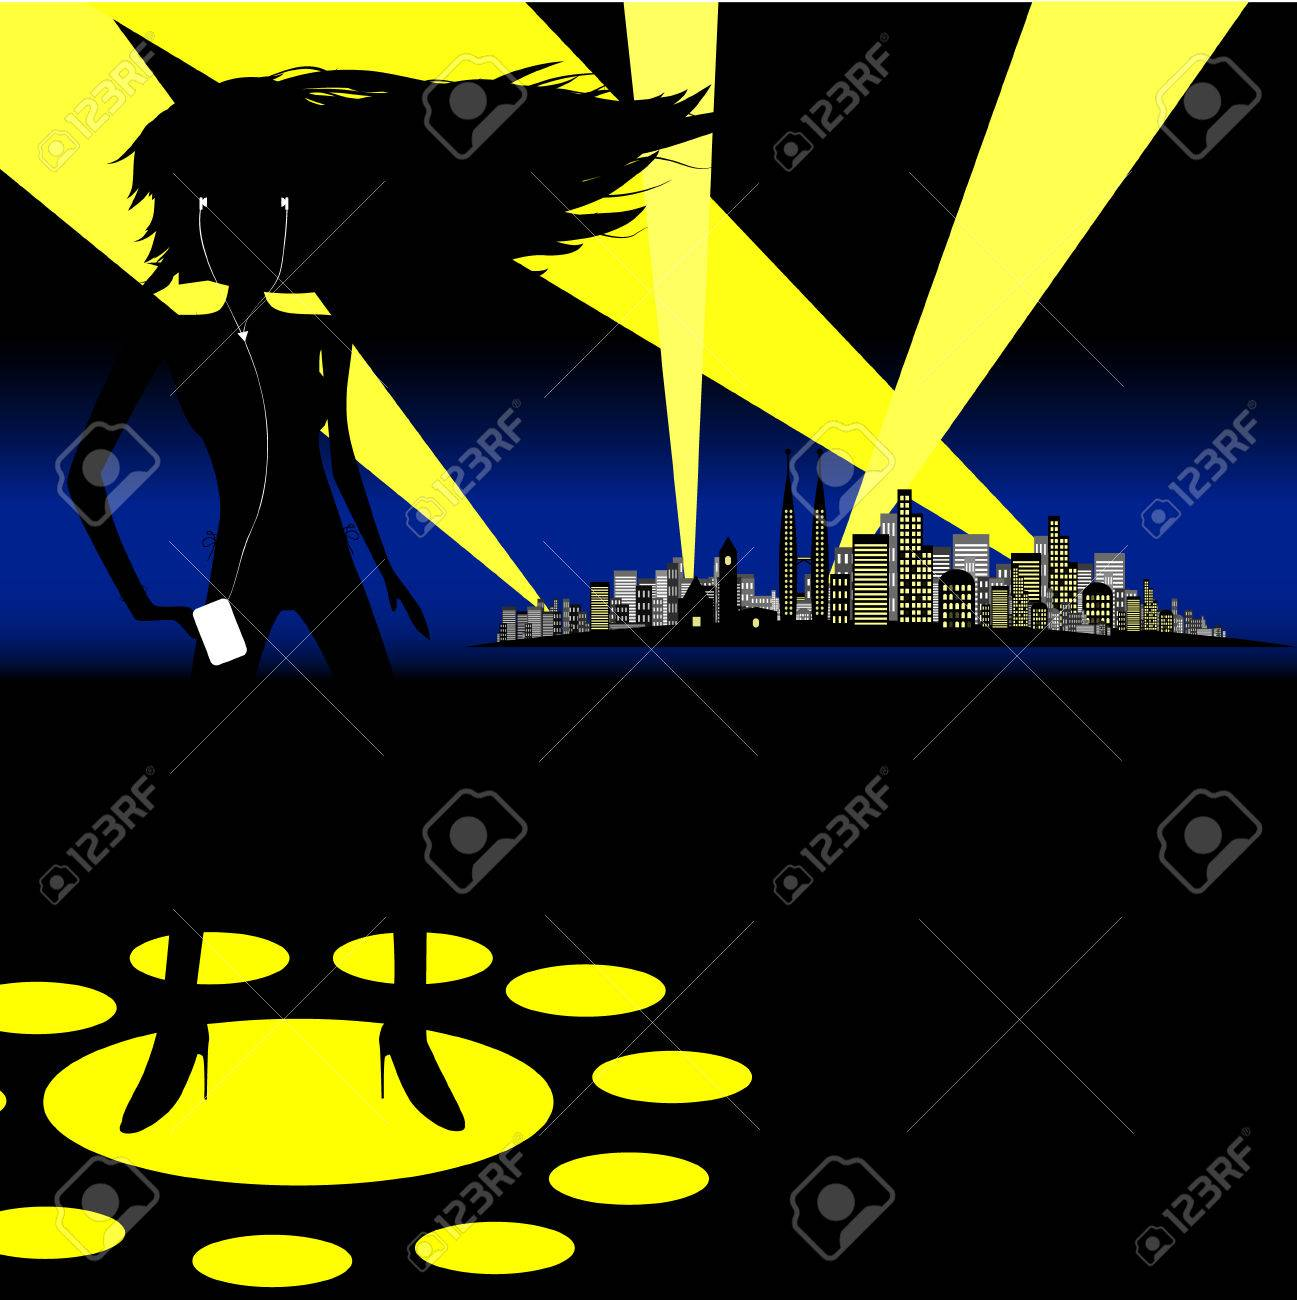 Vector - Woman dancing on spotlights with a city in the background. Concept: Woman partying. Stock Vector - 1480898